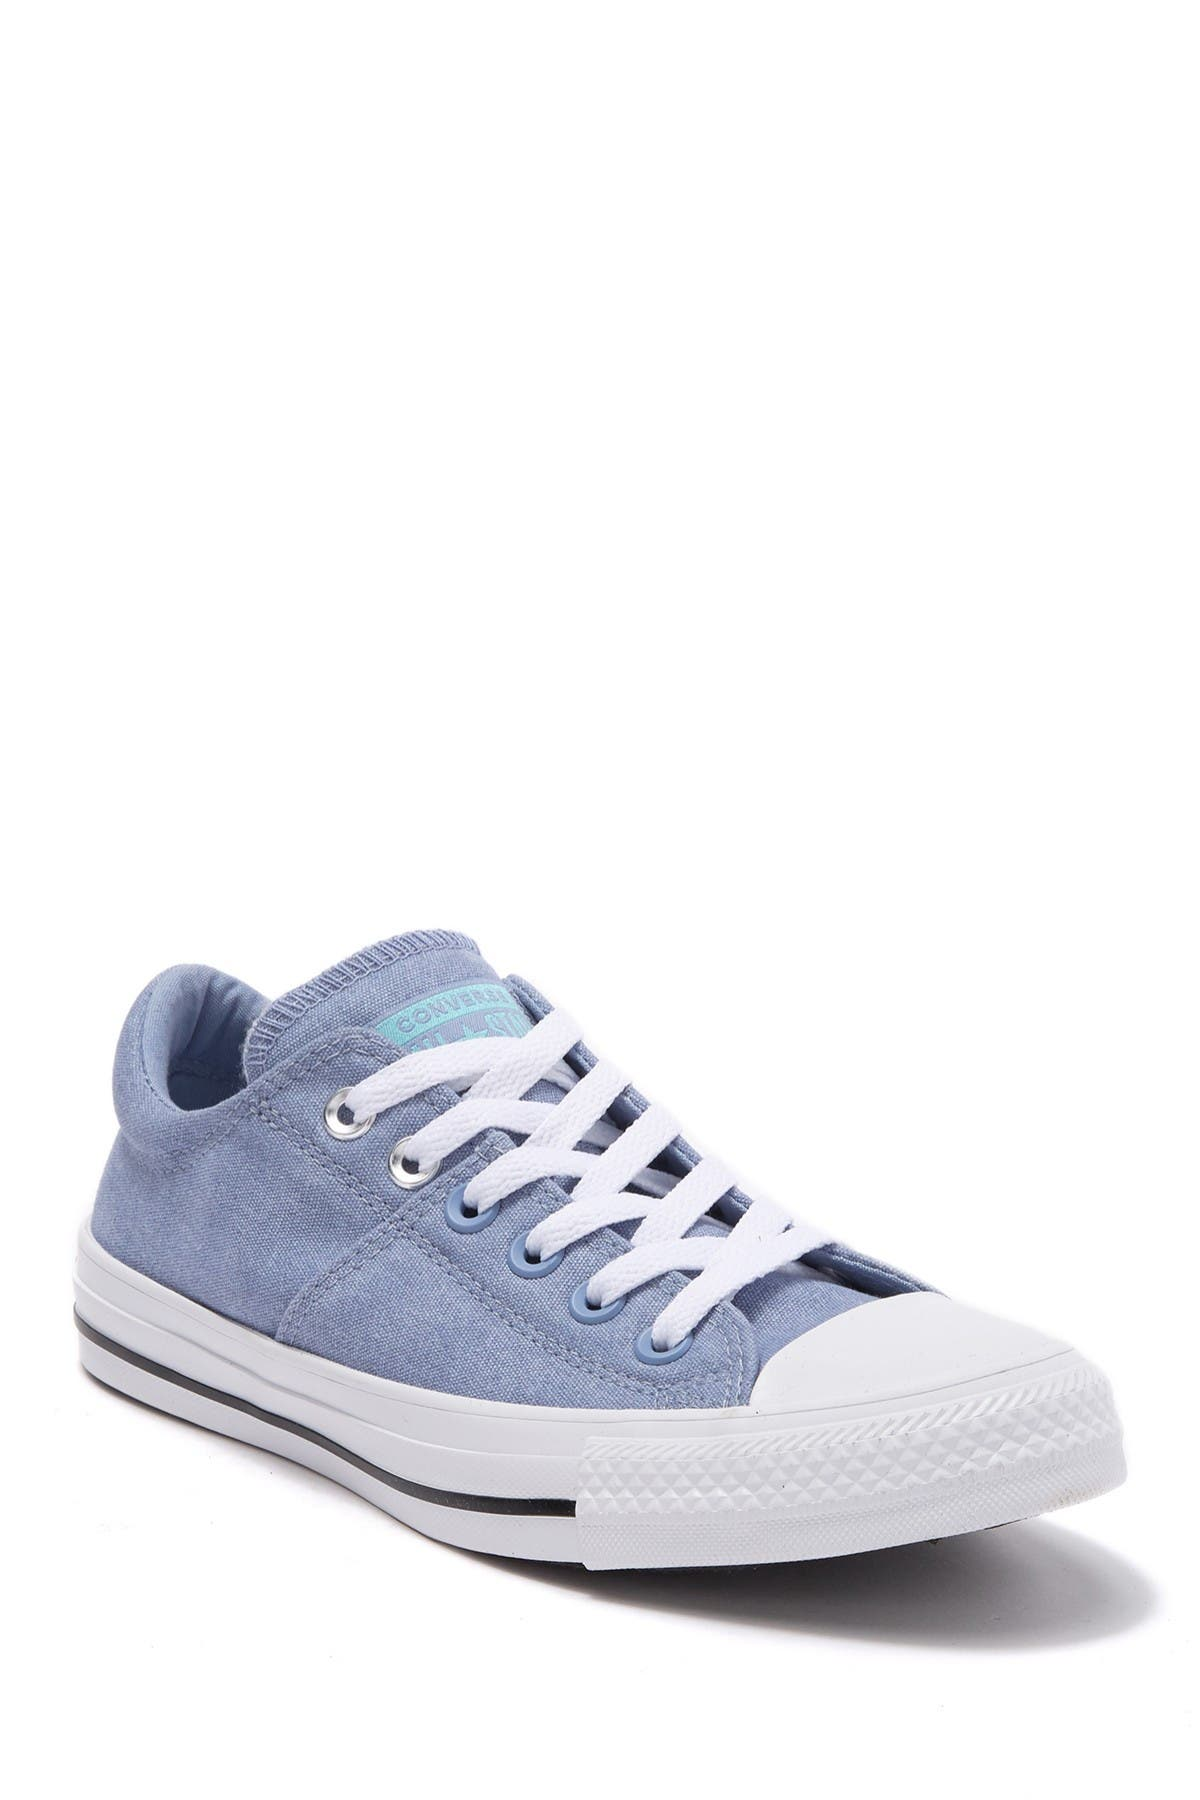 Image of Converse Chuck Taylor All-Star Madison Low Top Sneaker